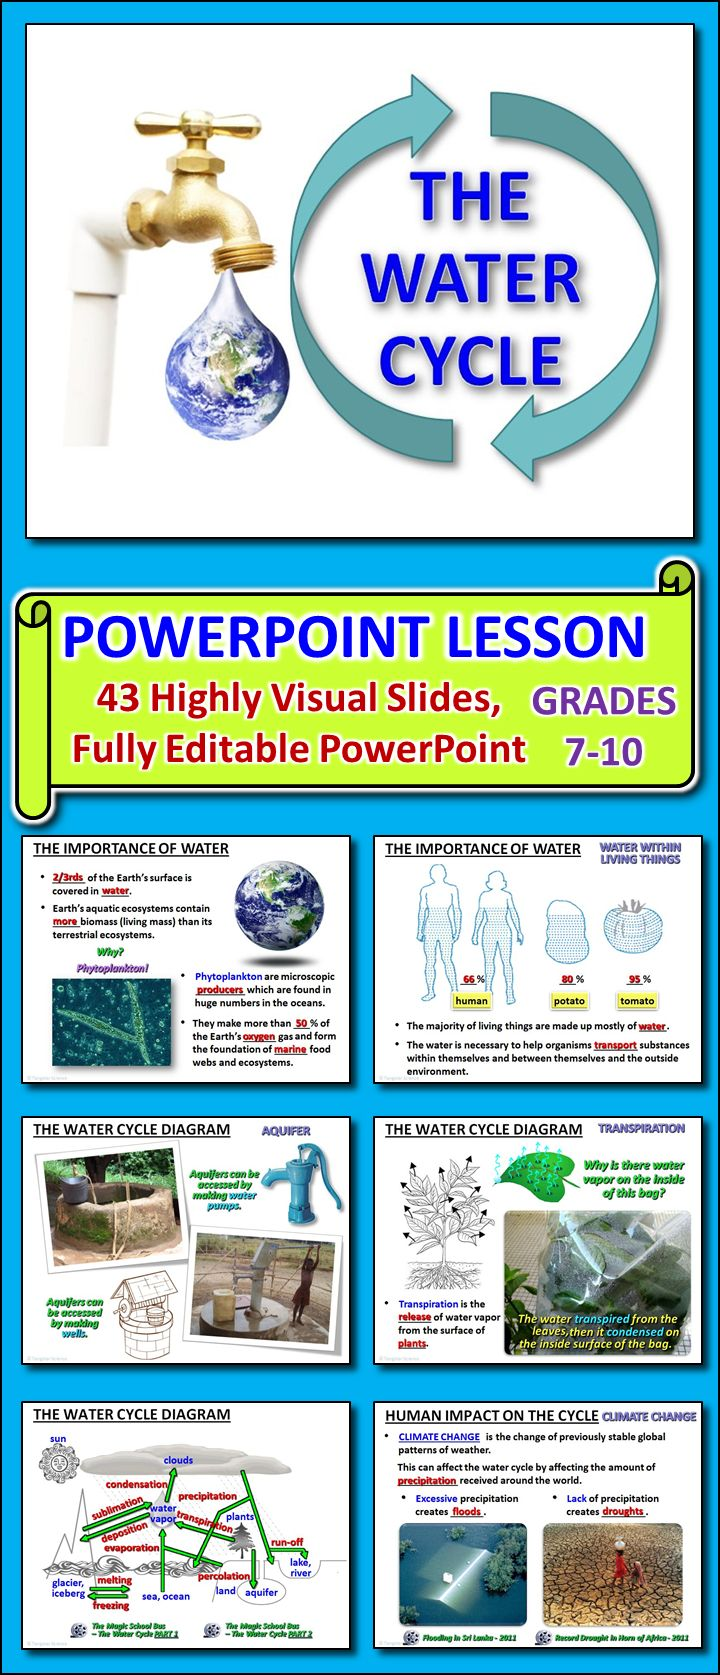 This 43 Slide EDITABLE POWERPOINT contains many high resolution images and and 8 Hyperlinked videos on the Water Cycle. This PowerPoint deals with the fundamentals of the water cycle (components and processes) and adds additional information on the environmental impacts of human activities on the water cycle.